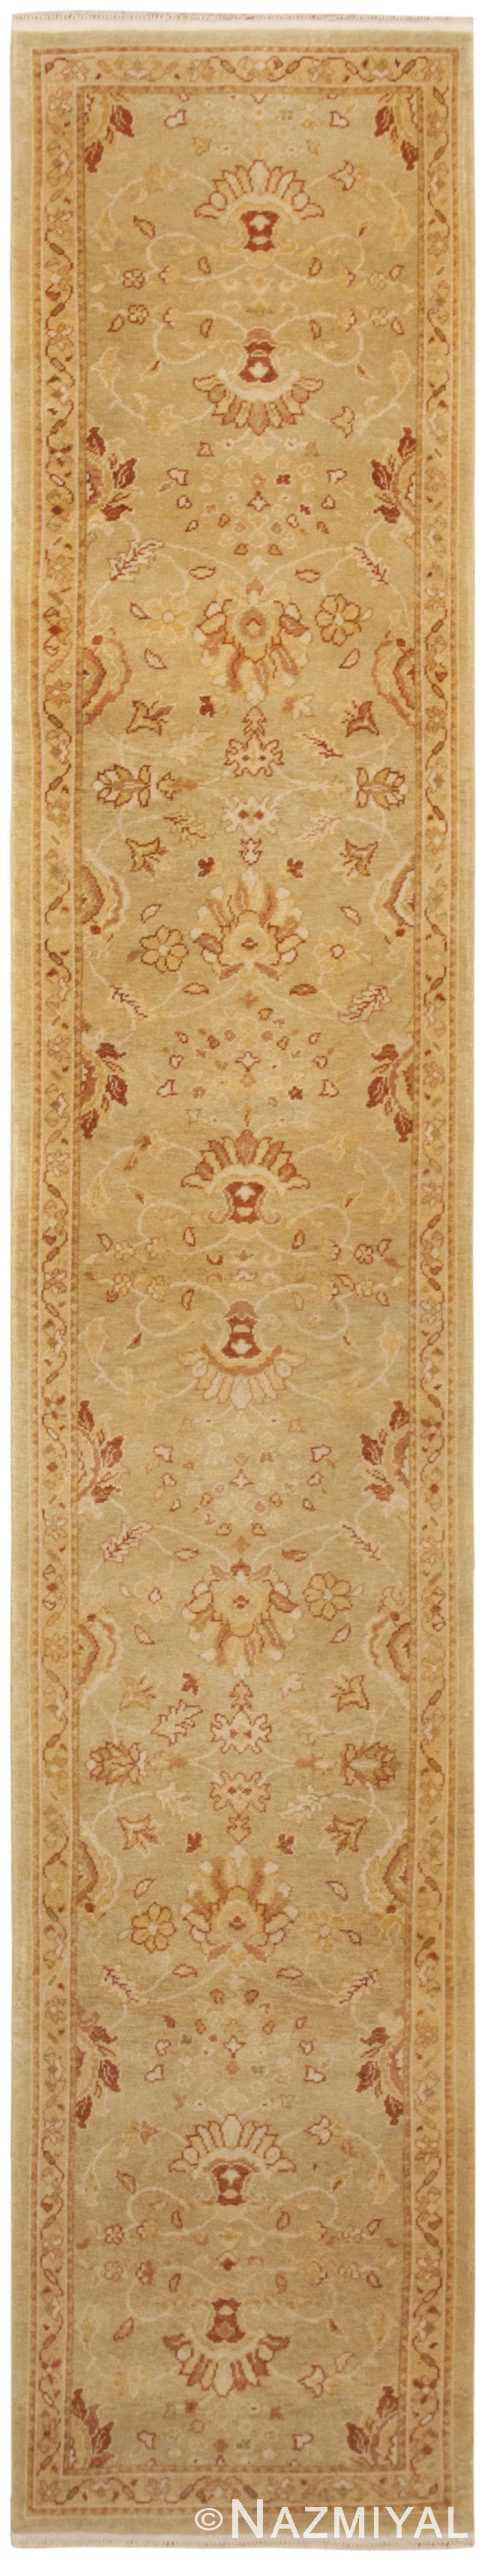 Contemporary Modern Oushak Runner Rug 46155 Nazmiyal